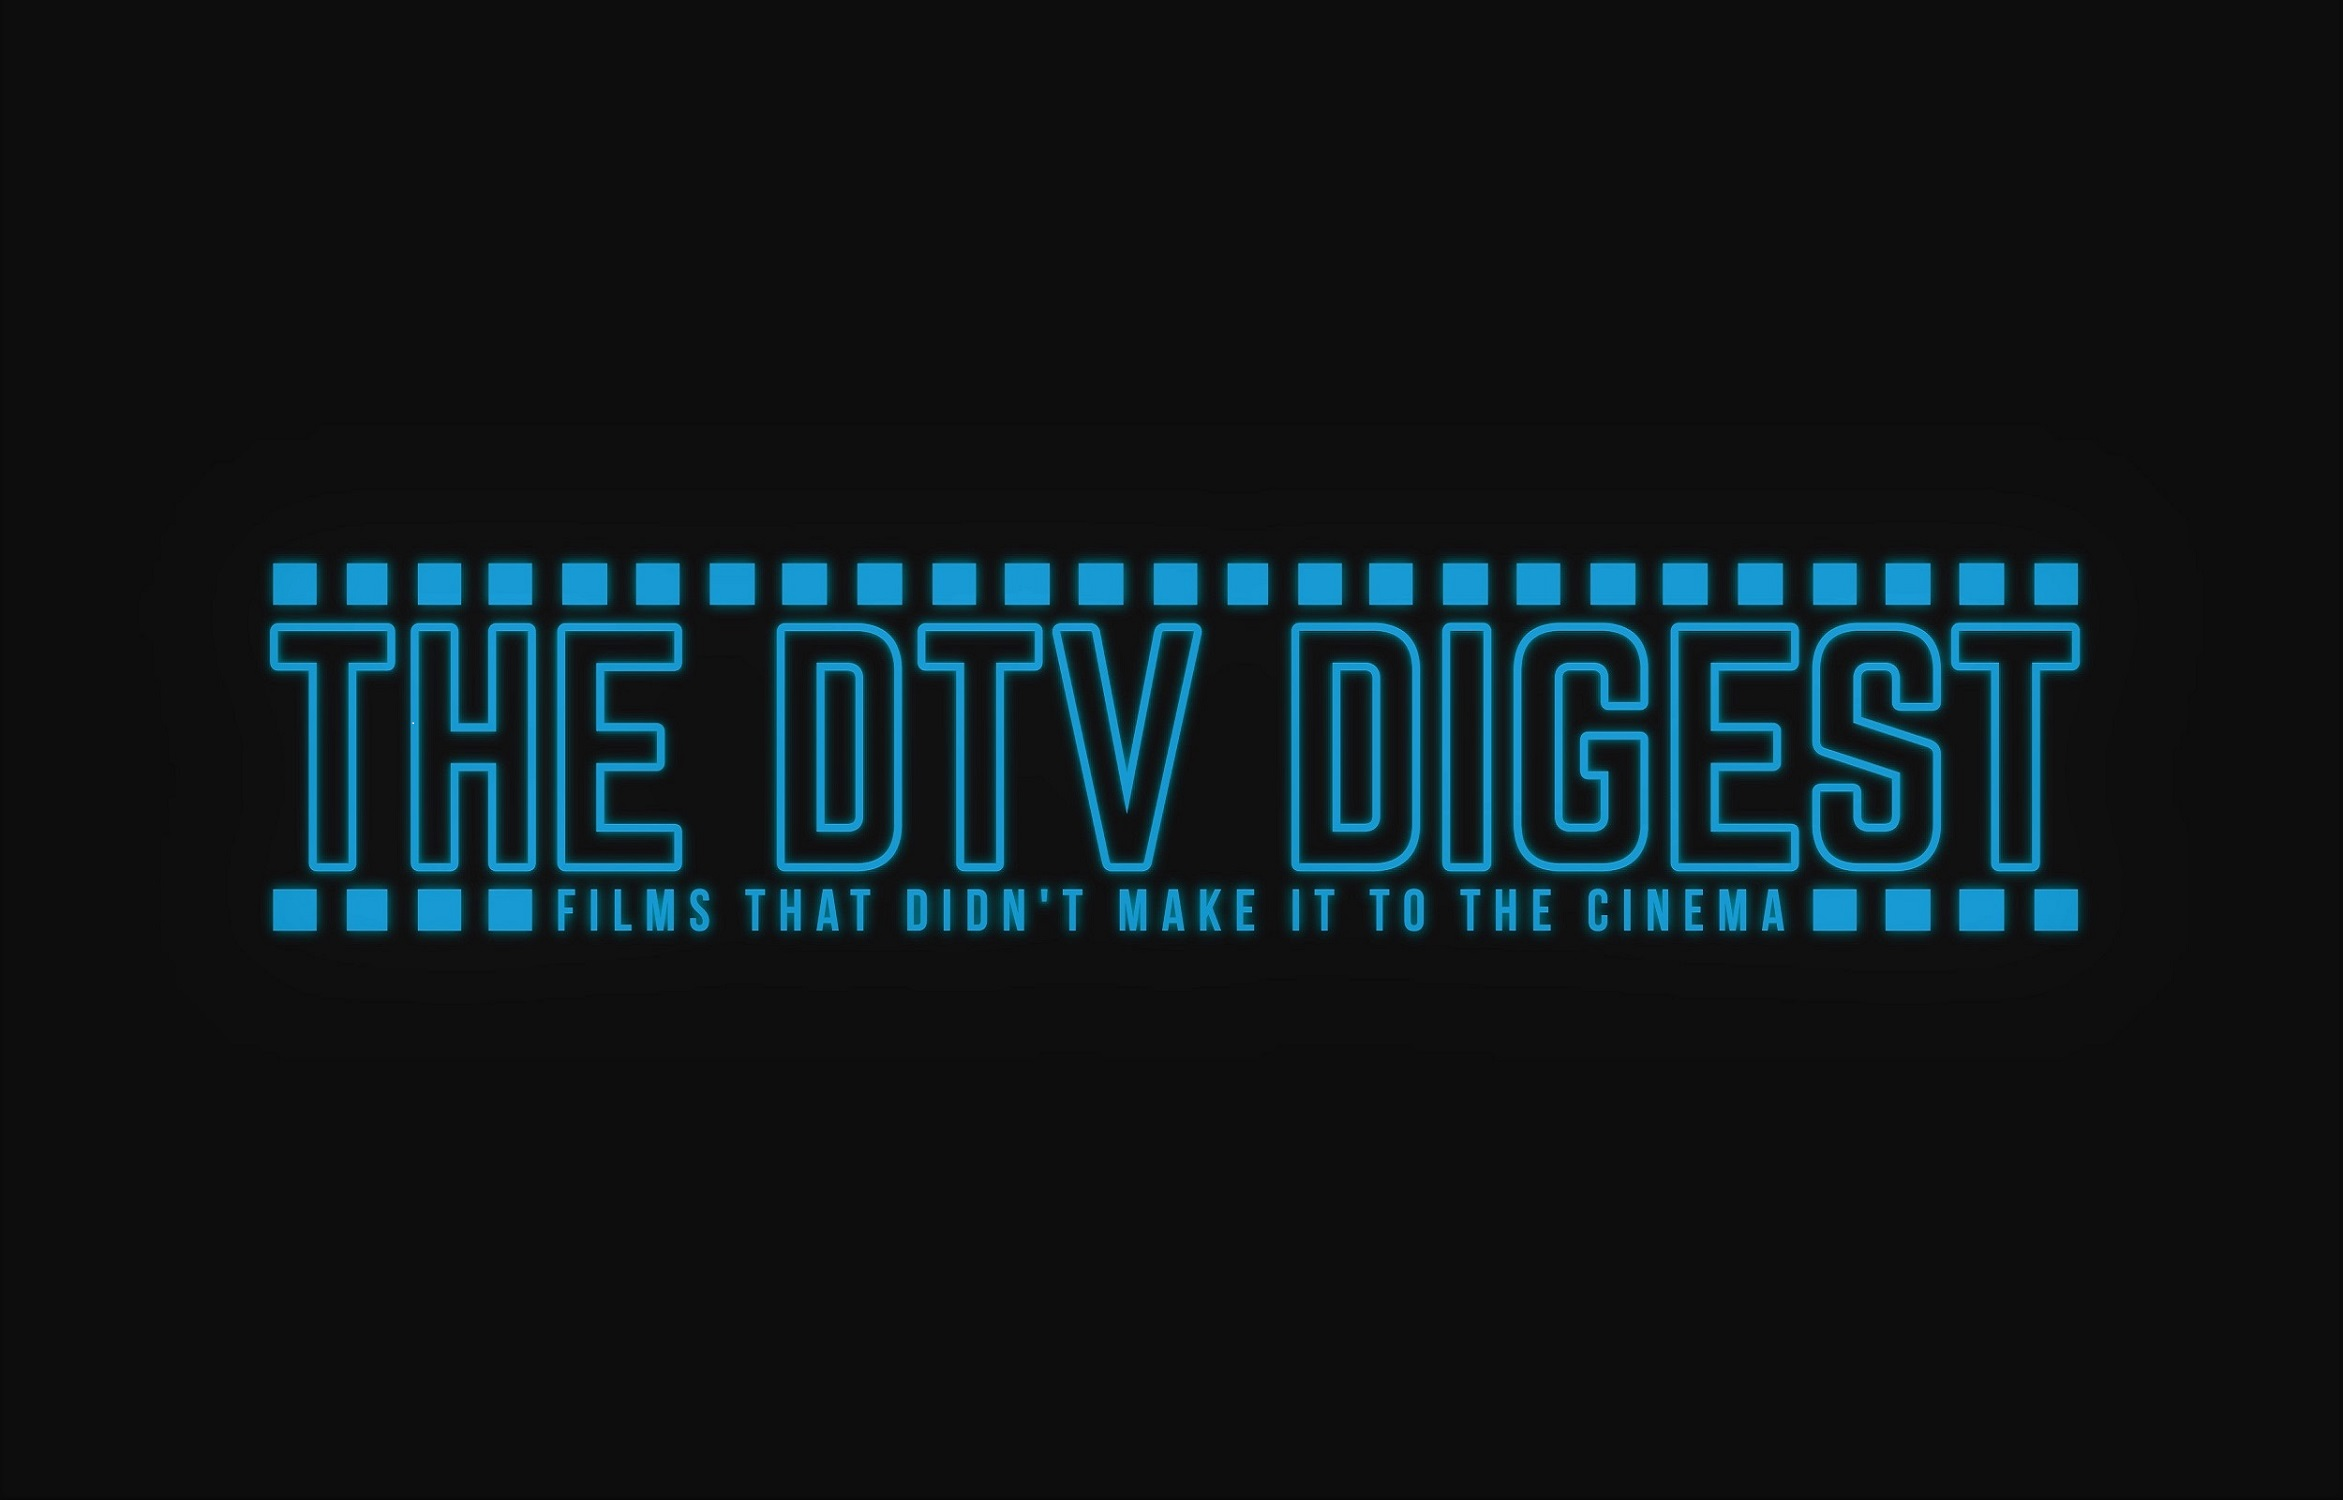 The DTV Digest